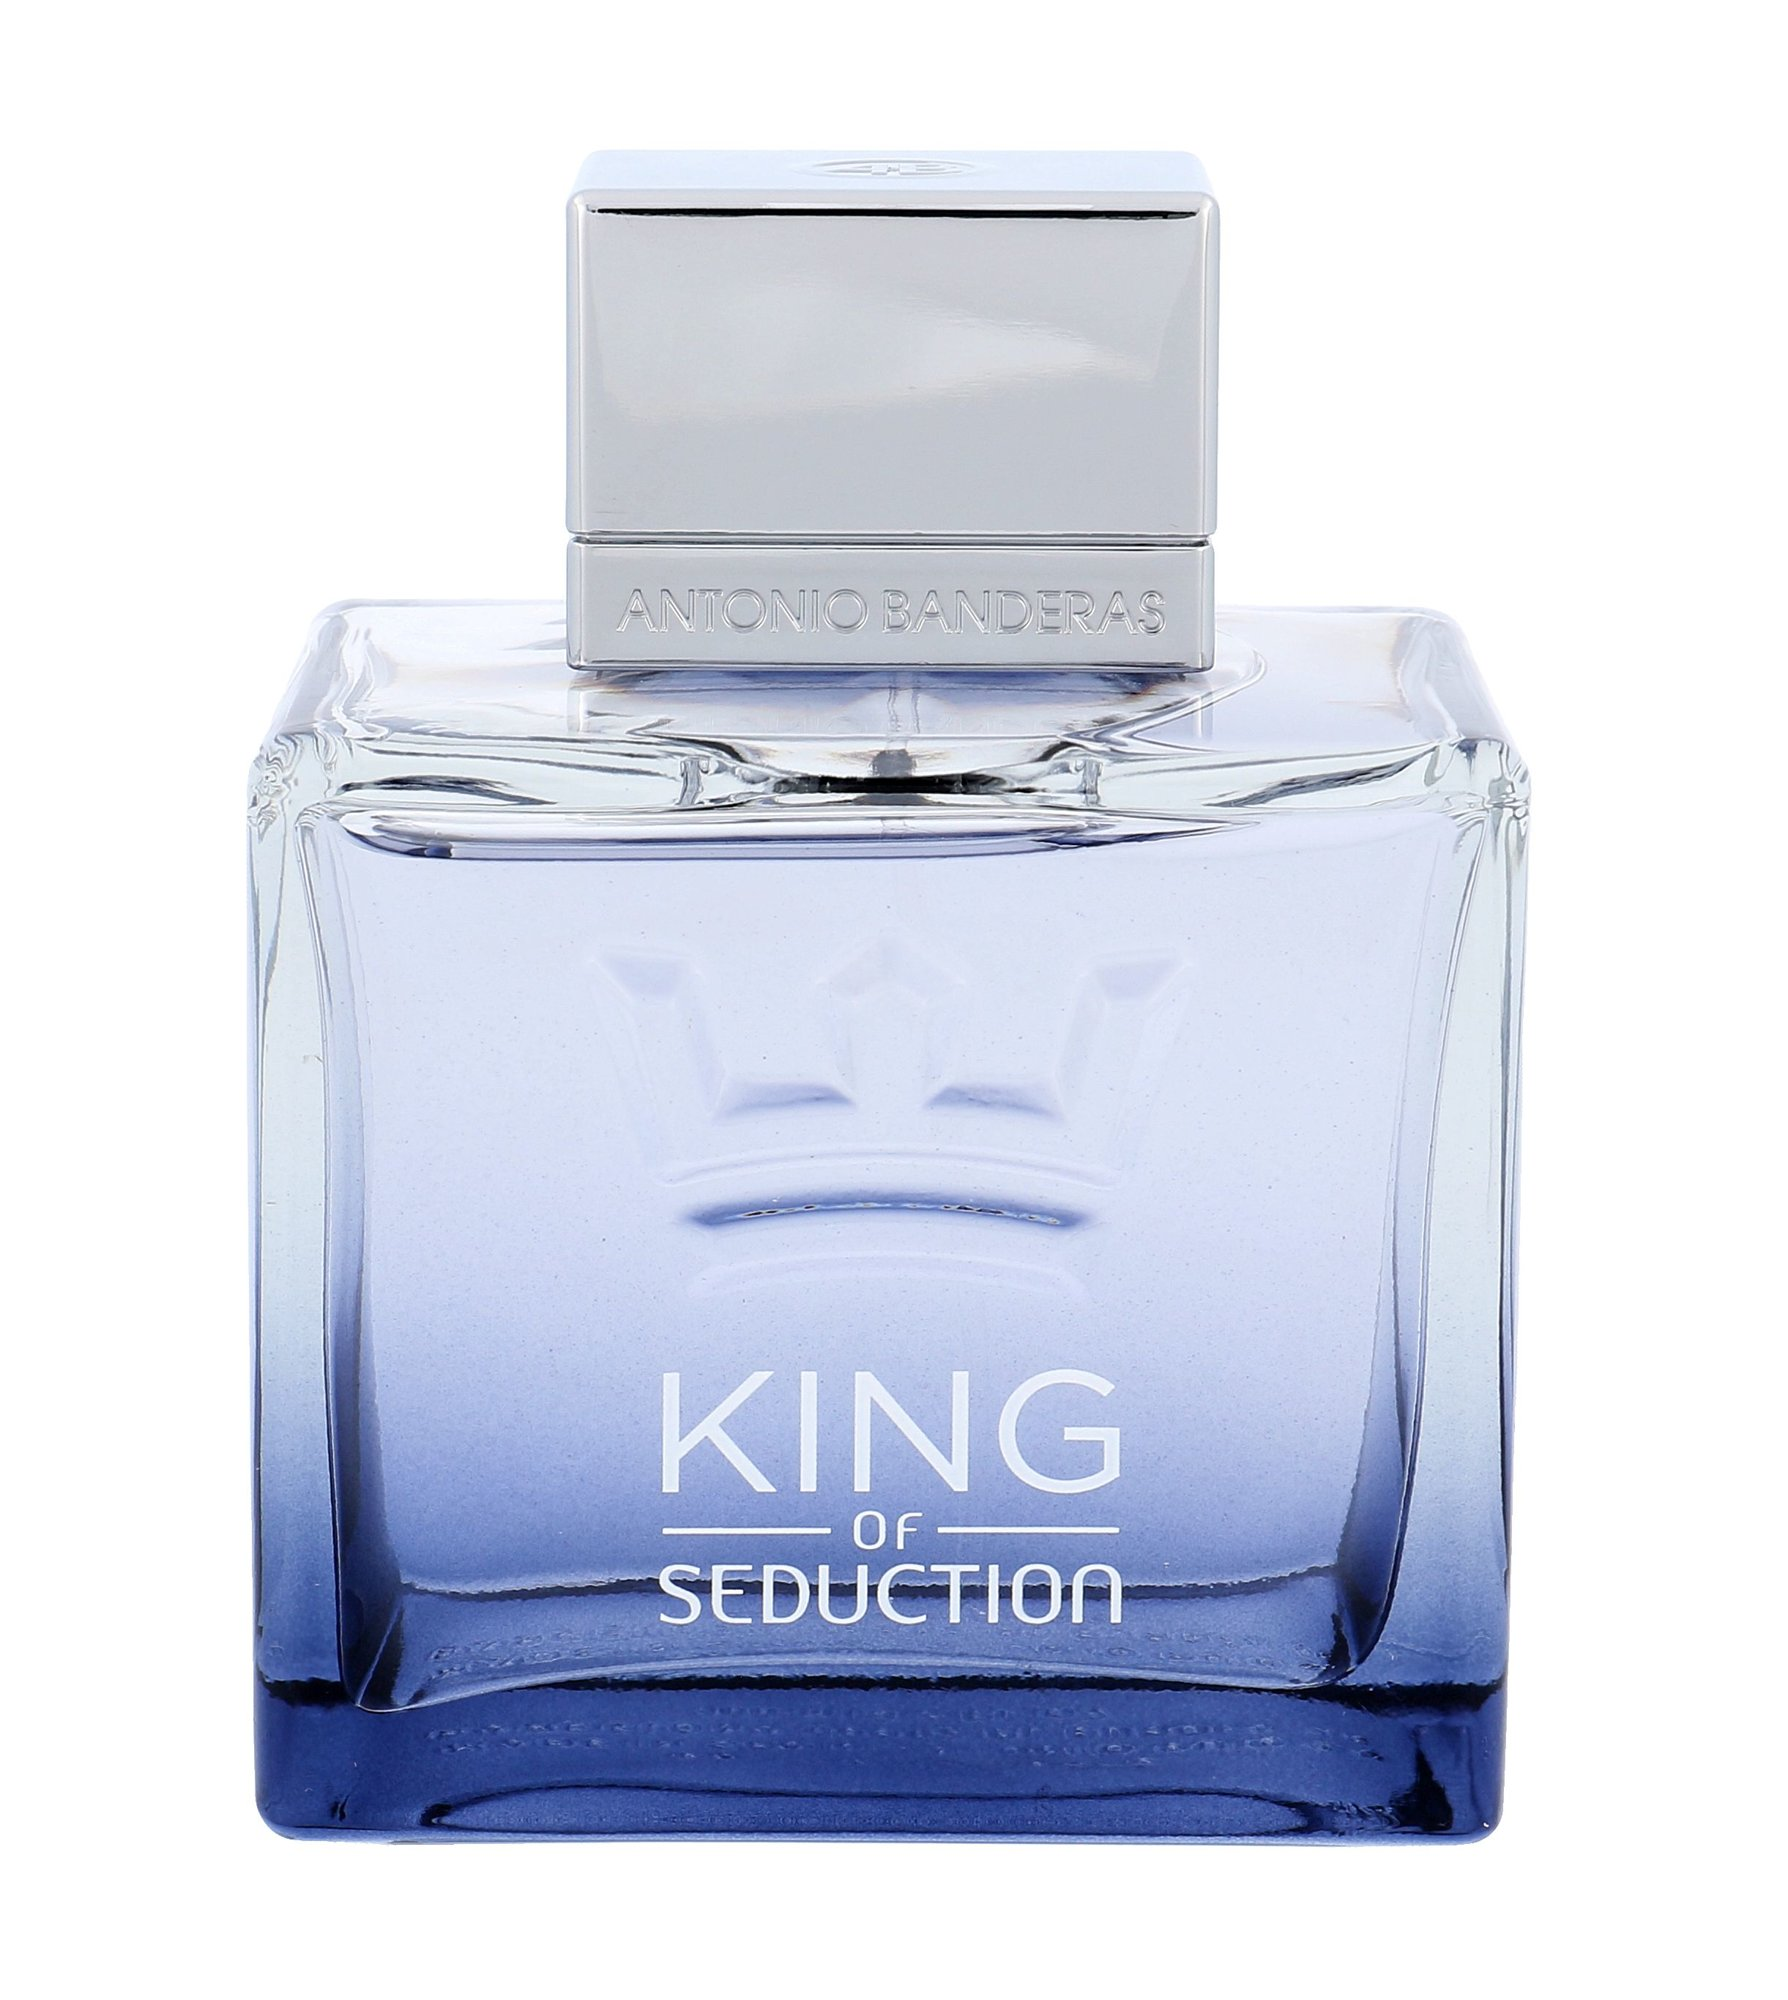 Antonio Banderas King of Seduction  Toaletní voda, M, 100 ml